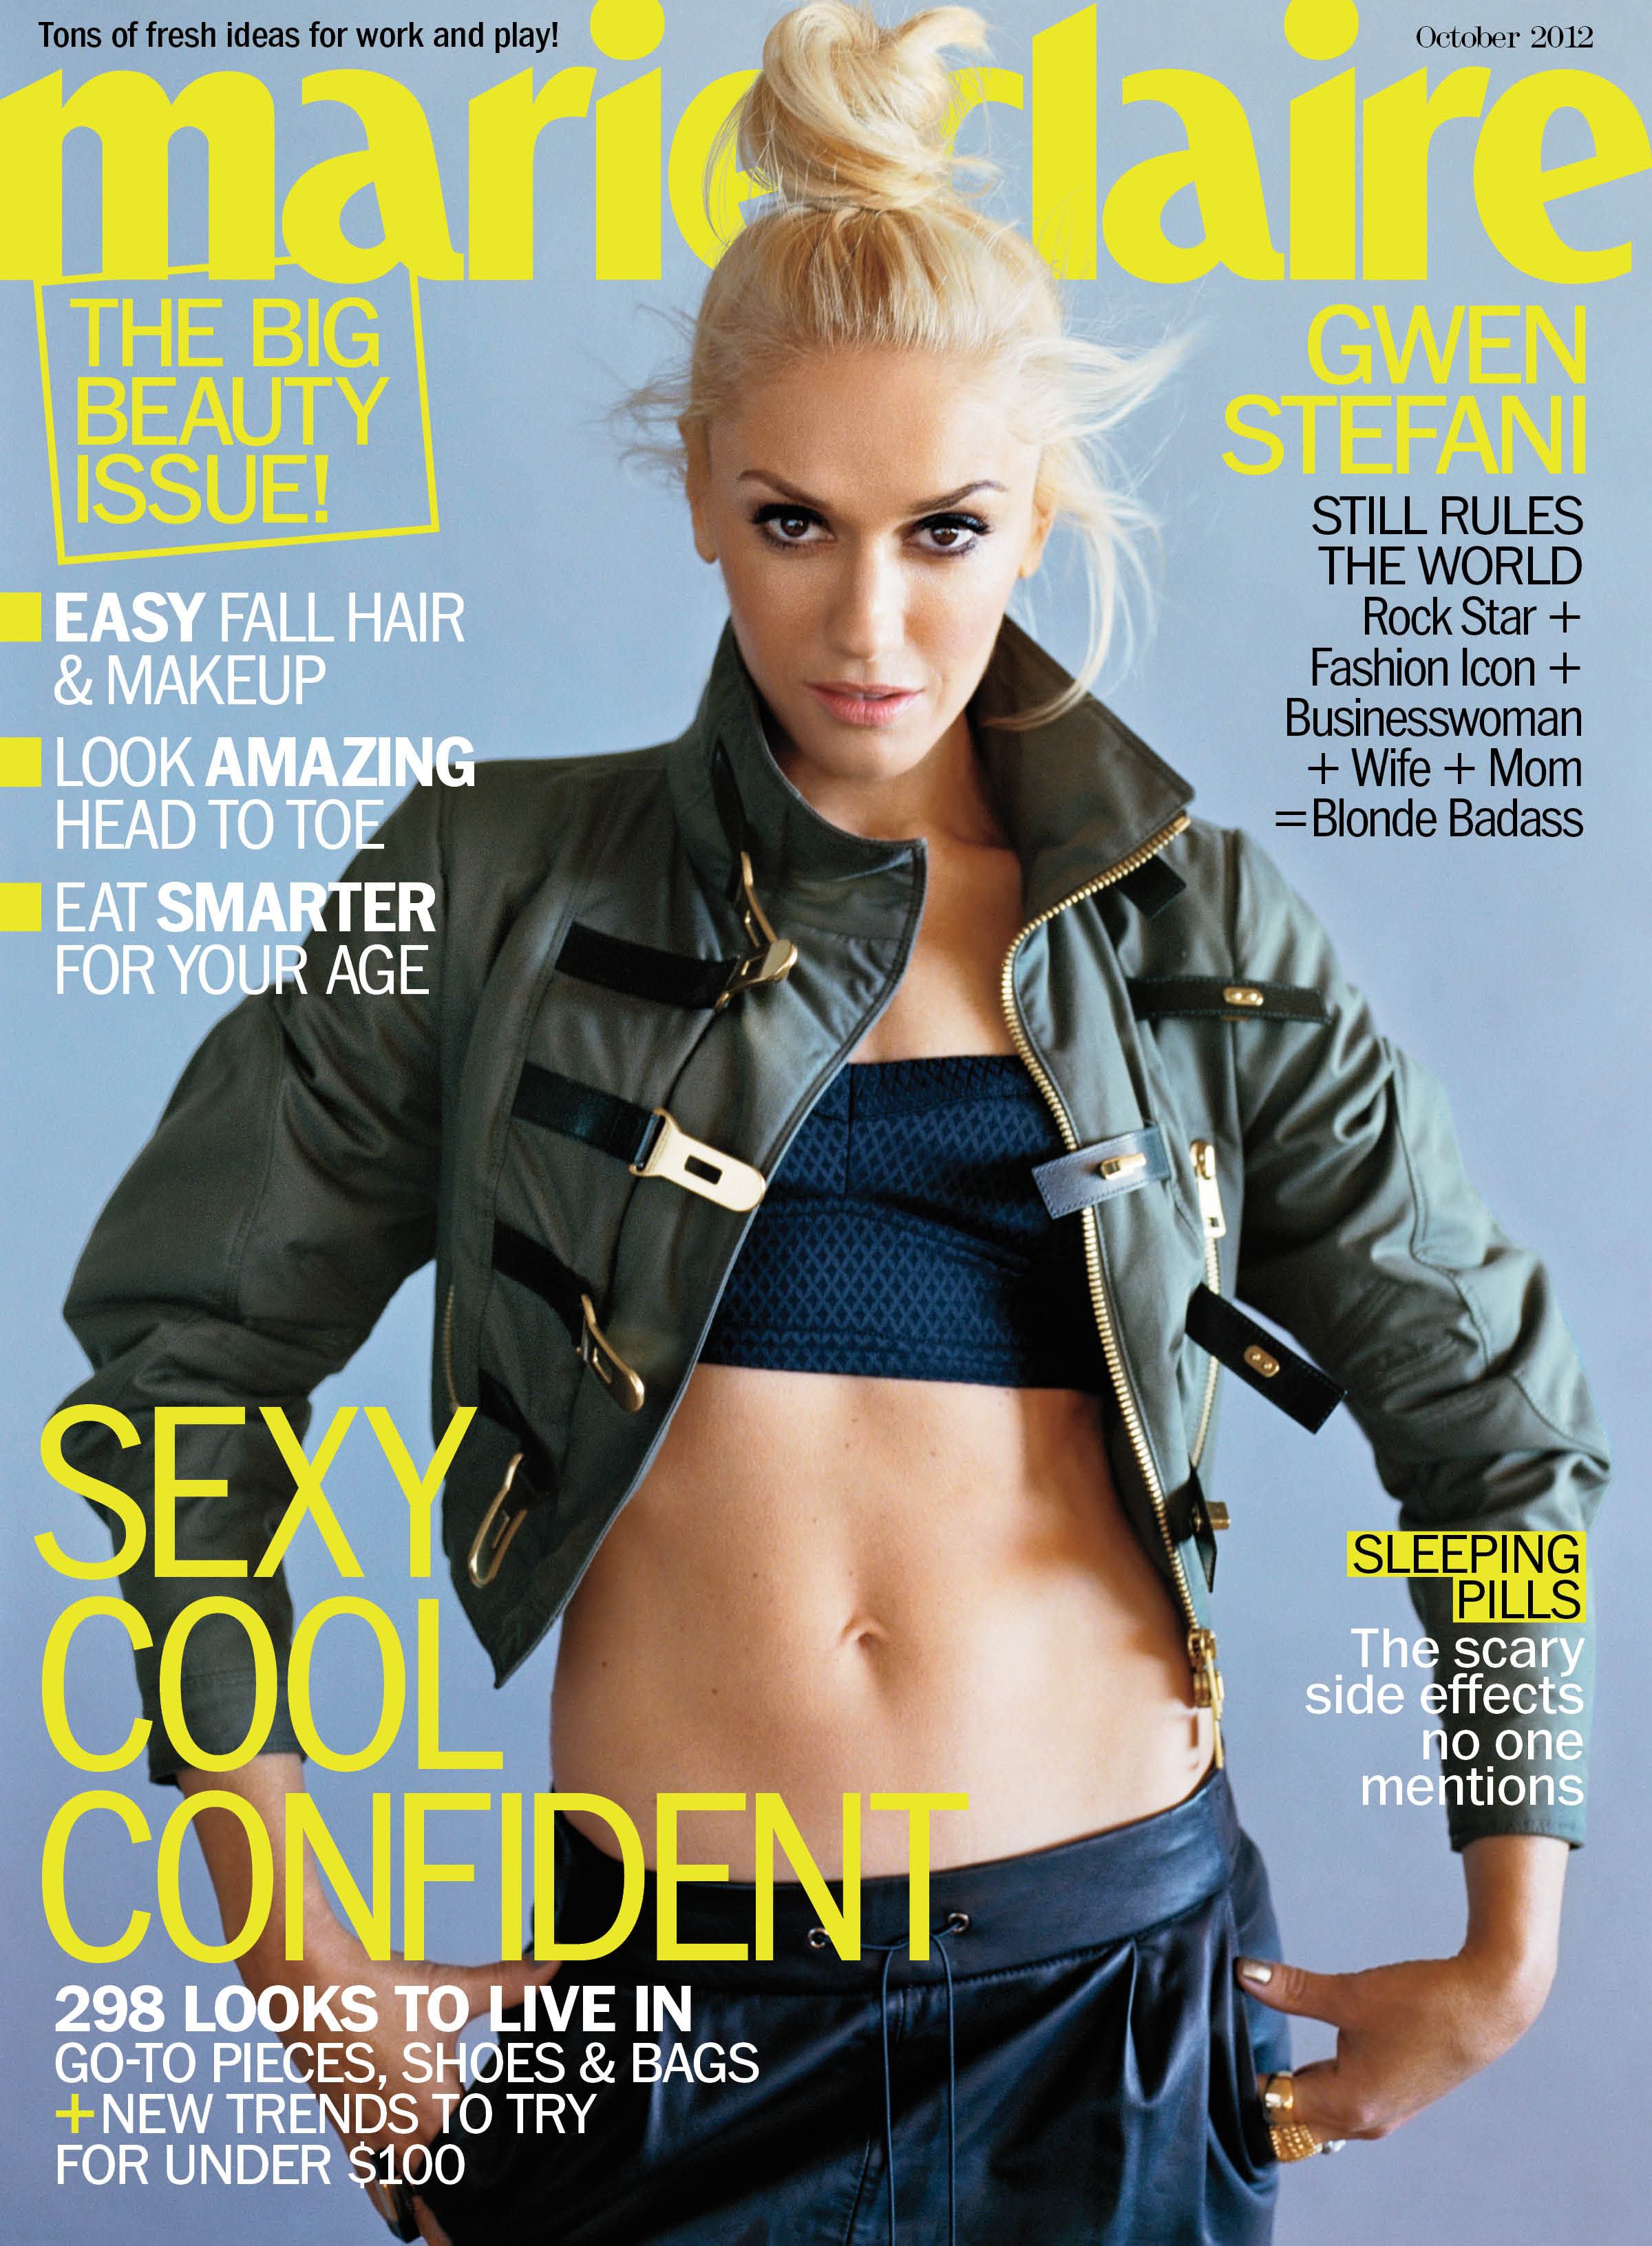 Gwen Stefani talks love - Marie Claire October 2012.jpg